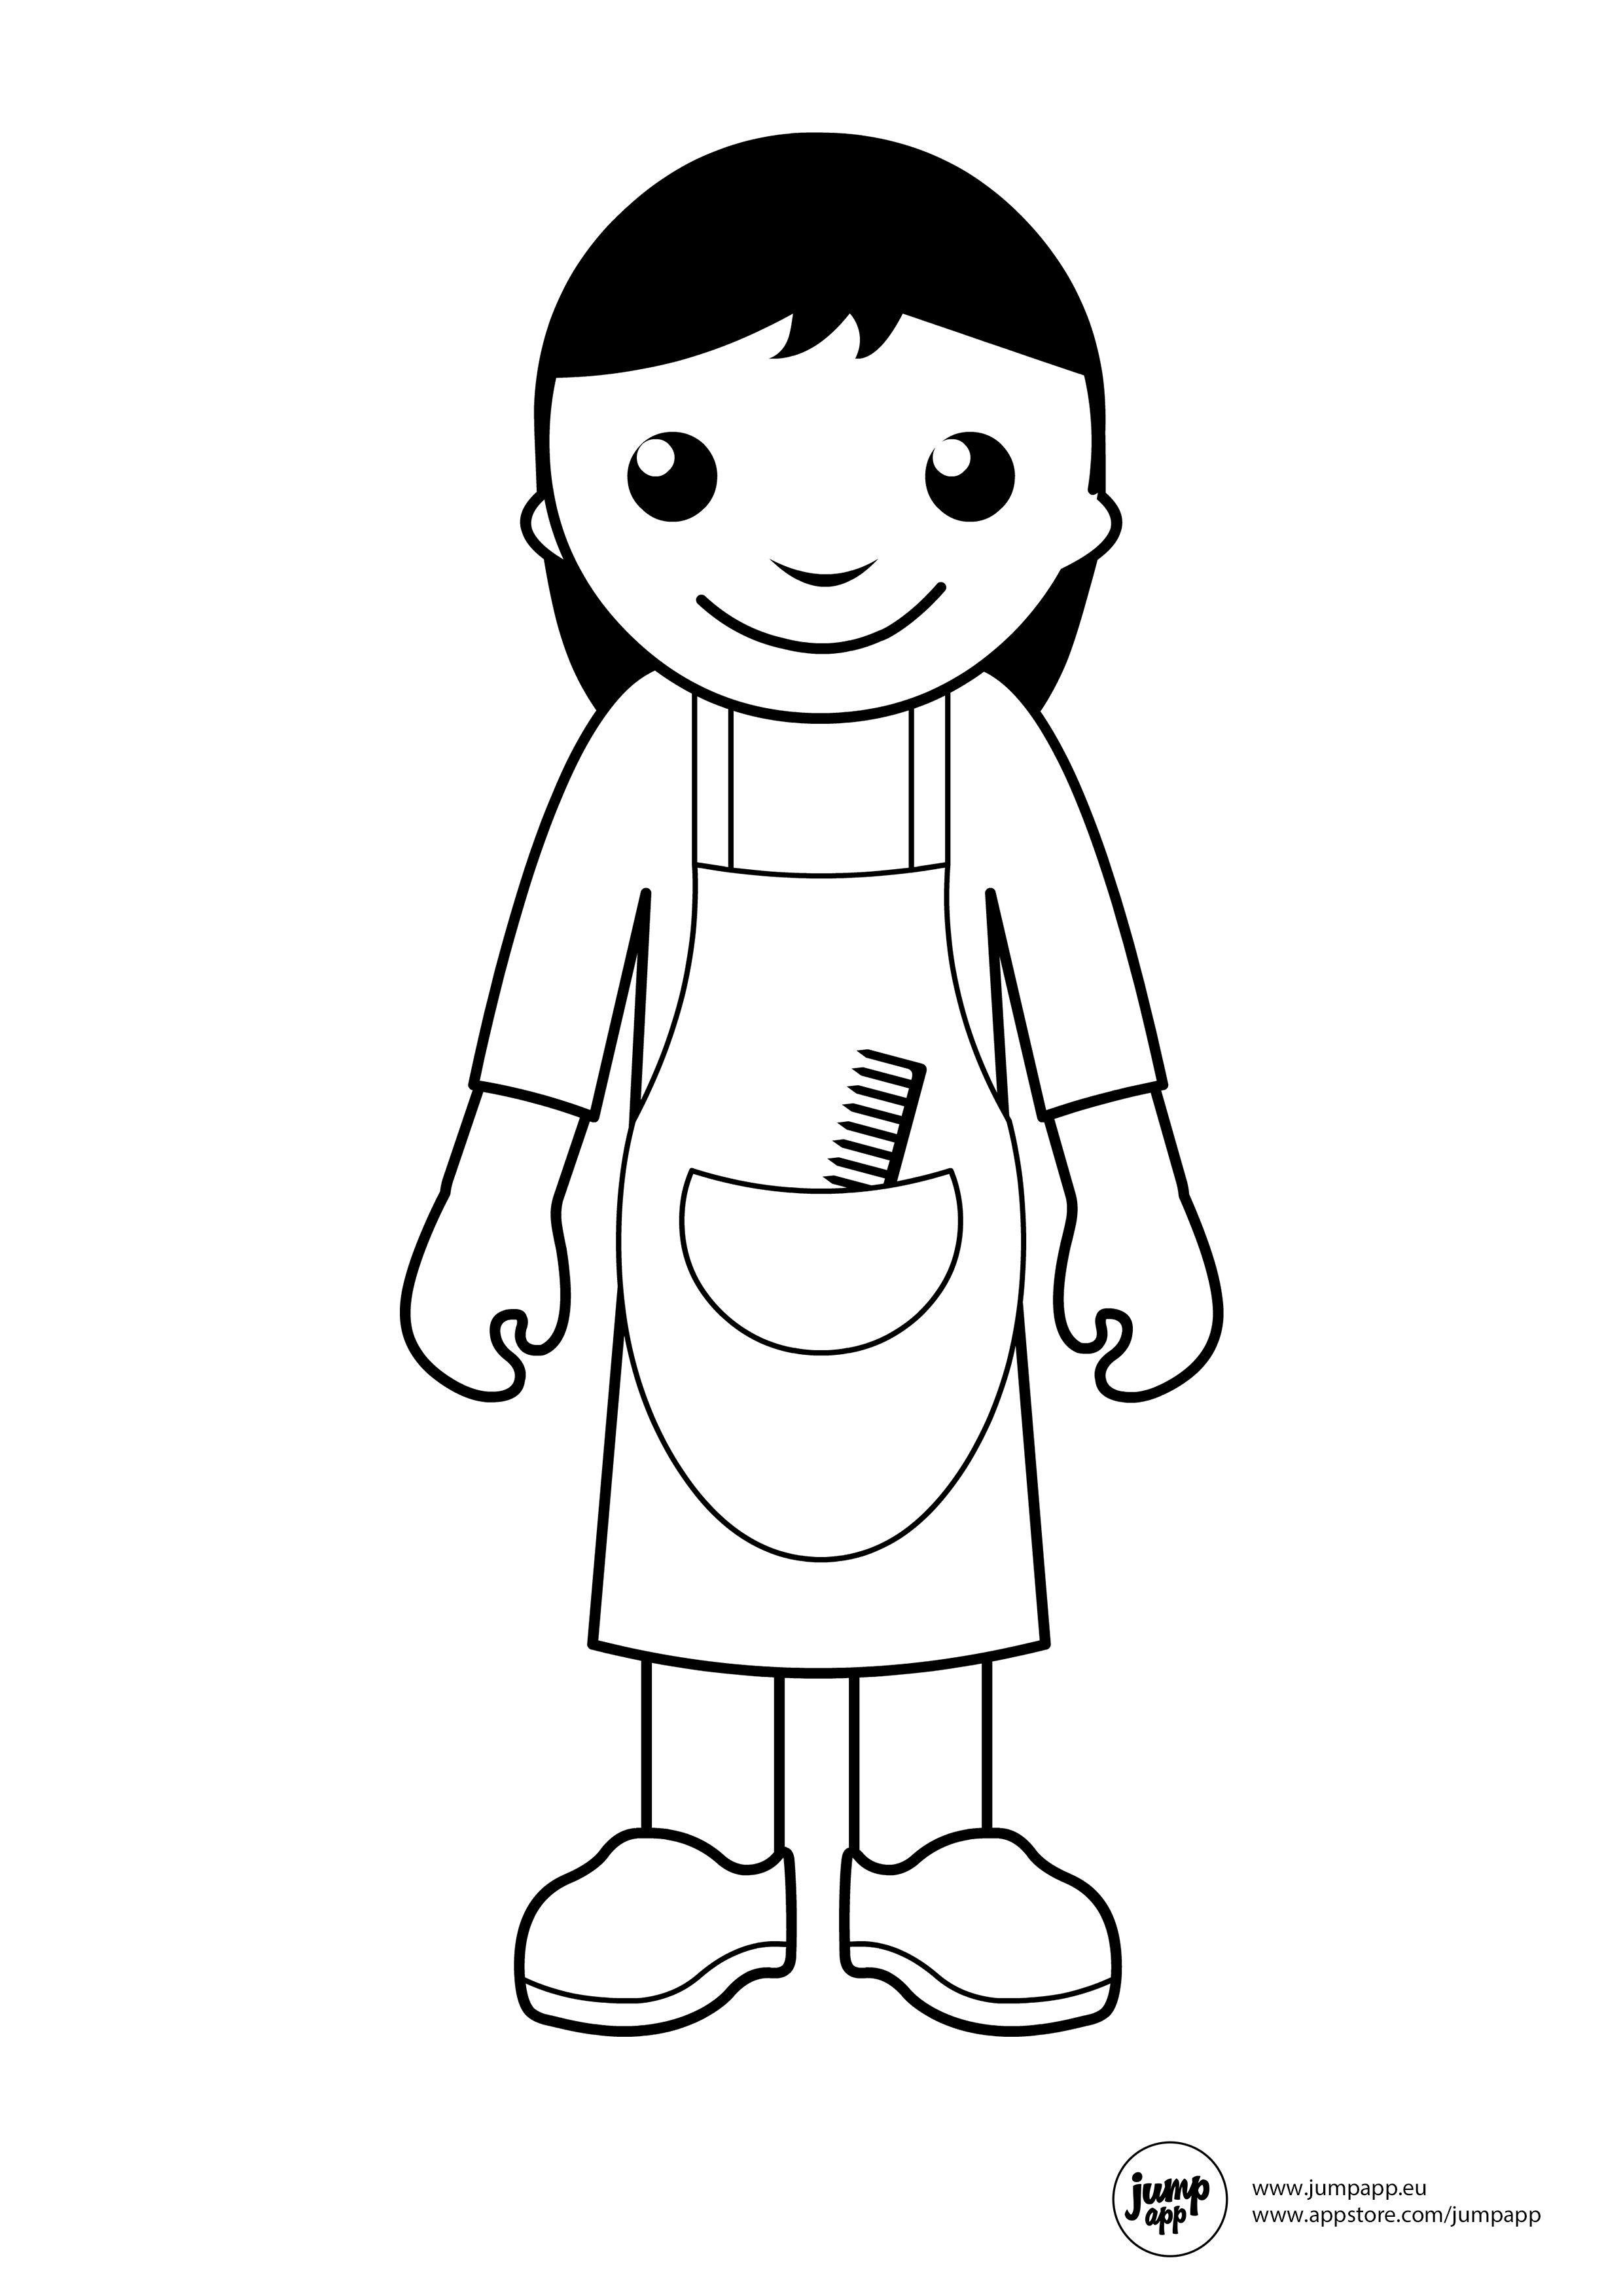 hairdresser | Printable Coloring Pages | Pinterest